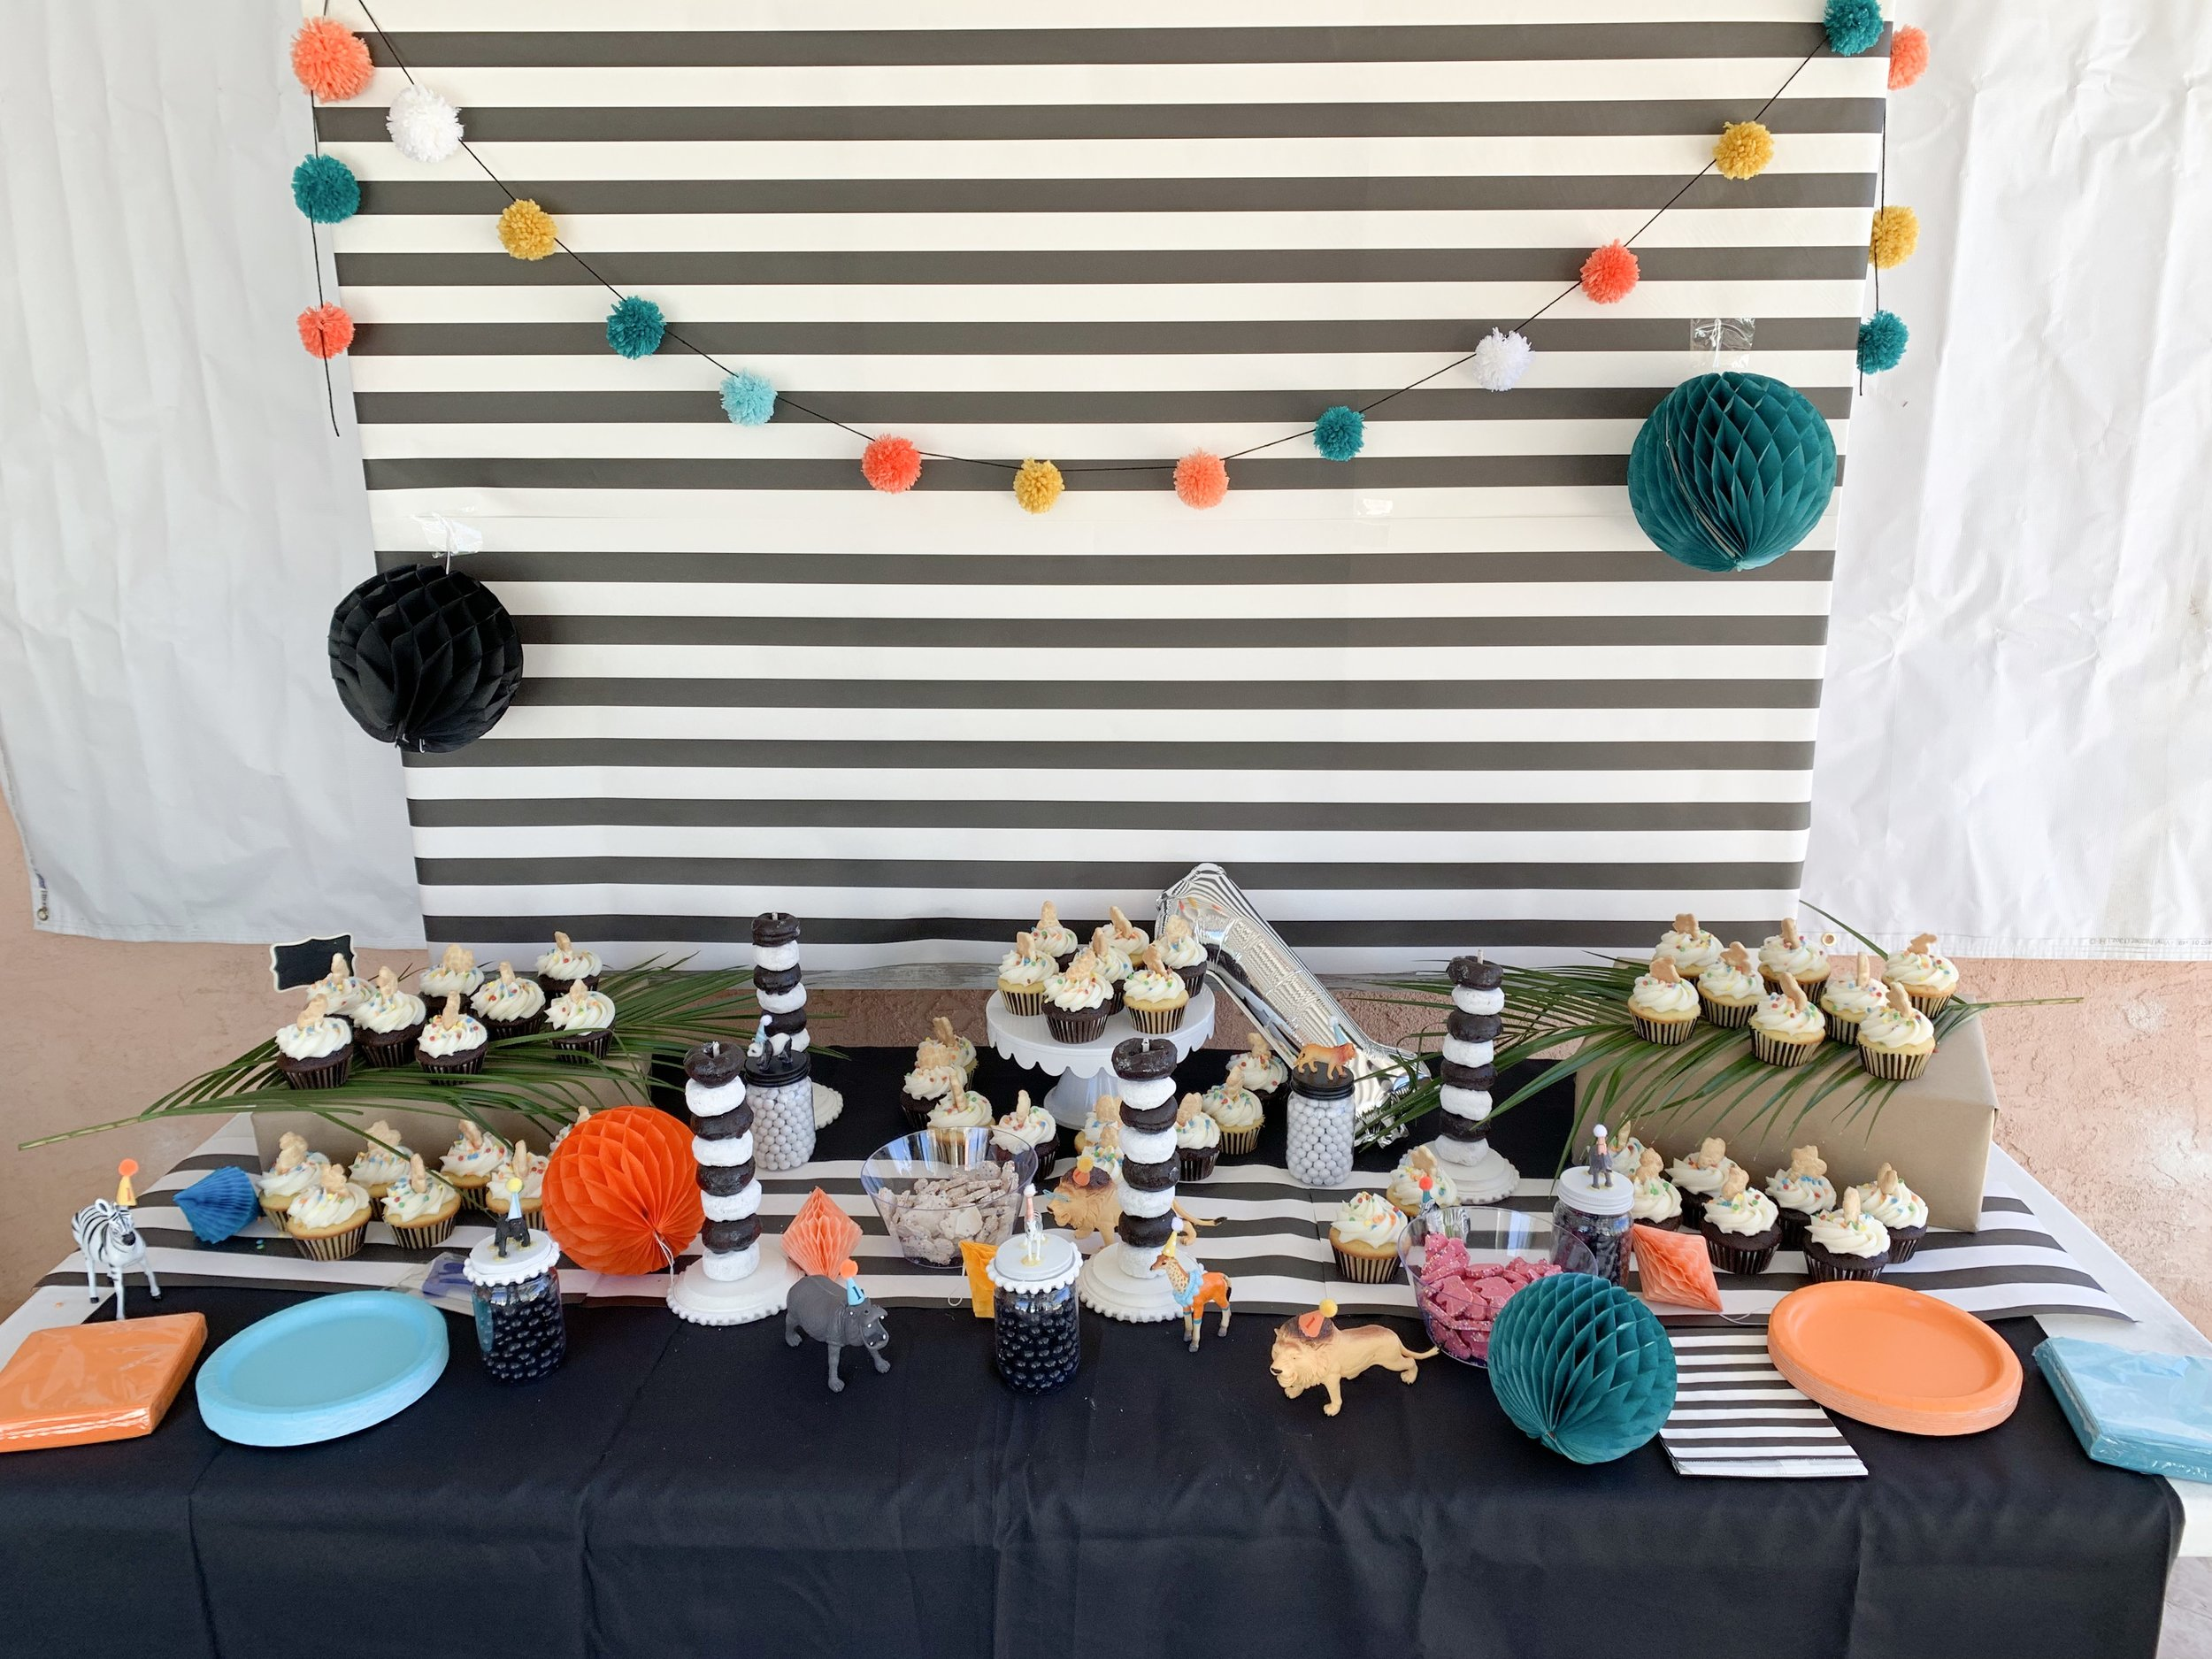 DIY party animal dessert table for a 1st birthday party